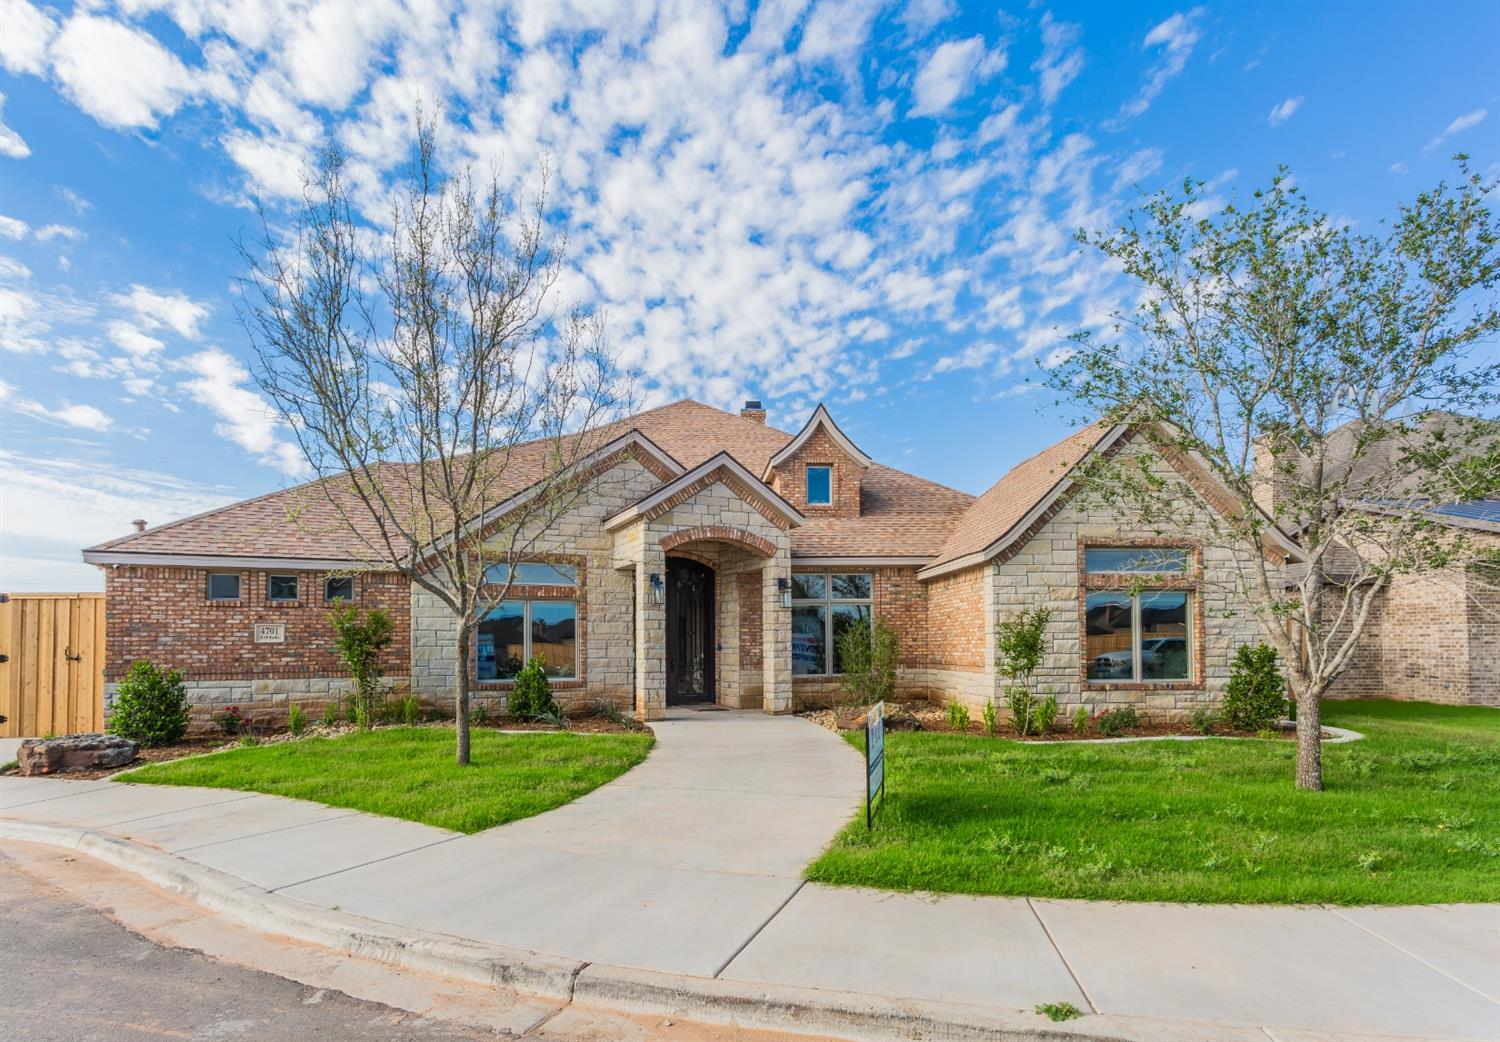 4701 104th, Lubbock, Texas